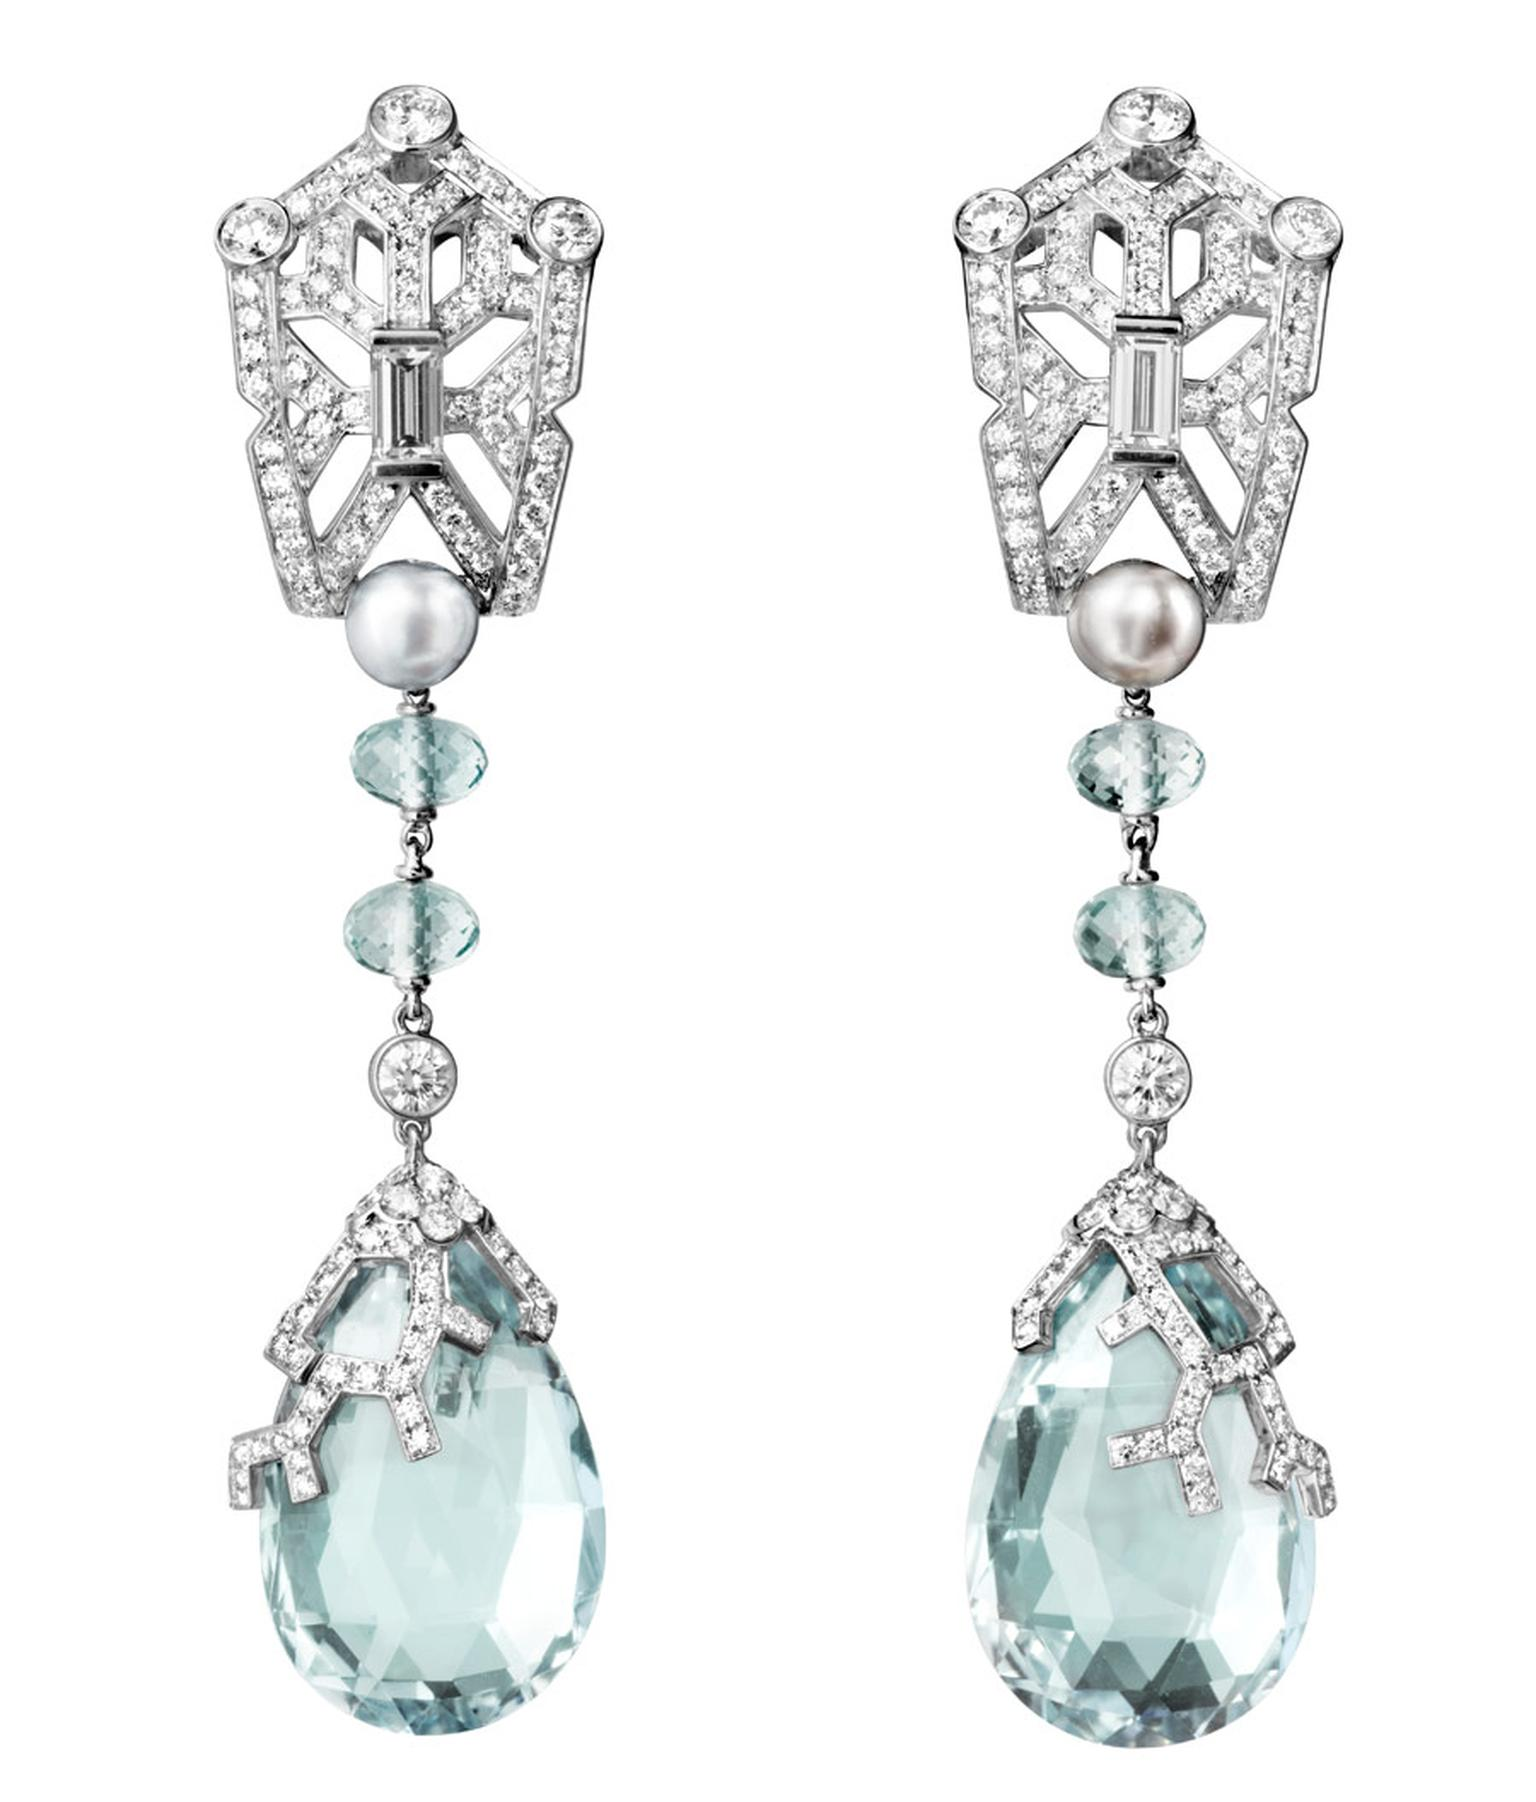 Cartier platinum Boreal Earrings featuring aquamarines, natural pearls and baguette-cut diamonds, brilliants. Image by: Vincent Wulveryck © Cartier 2012